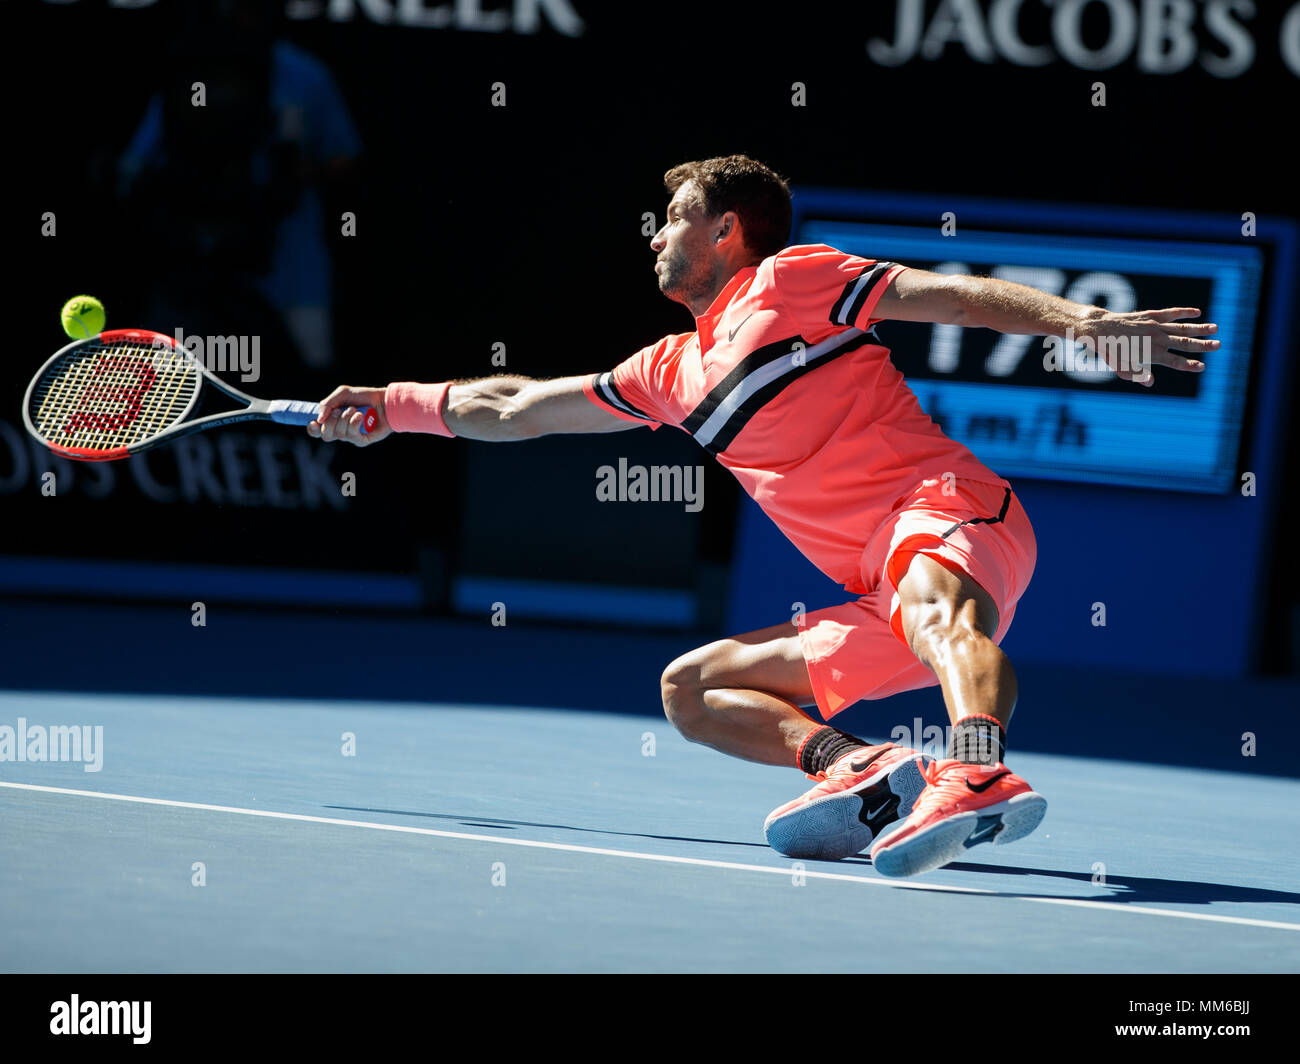 Bulgarian tennis player Grigor Dimitrov playing forehand shot  while falling, Australian Open 2018 Tennis Tournament, Melbourne Park, Melbourne, Victo - Stock Image